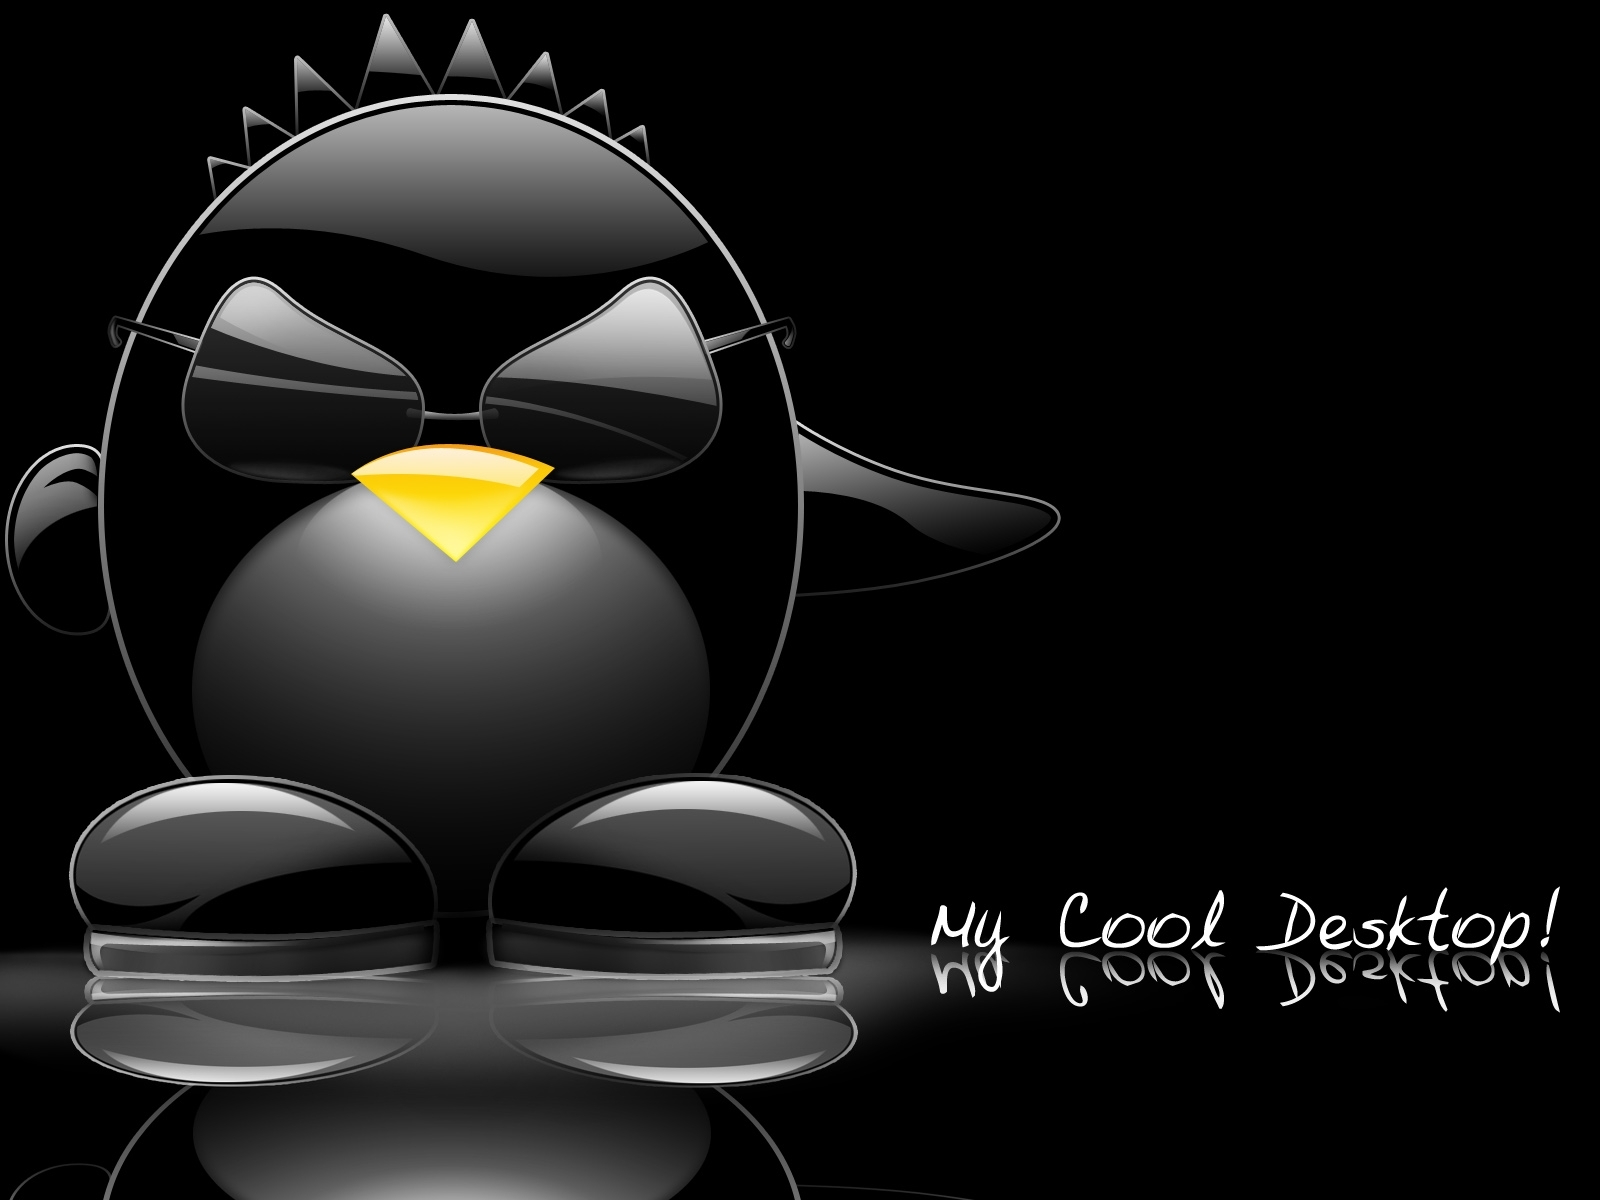 linux my cool desktop k 233 p my cool kitchen book and short film my cool home page